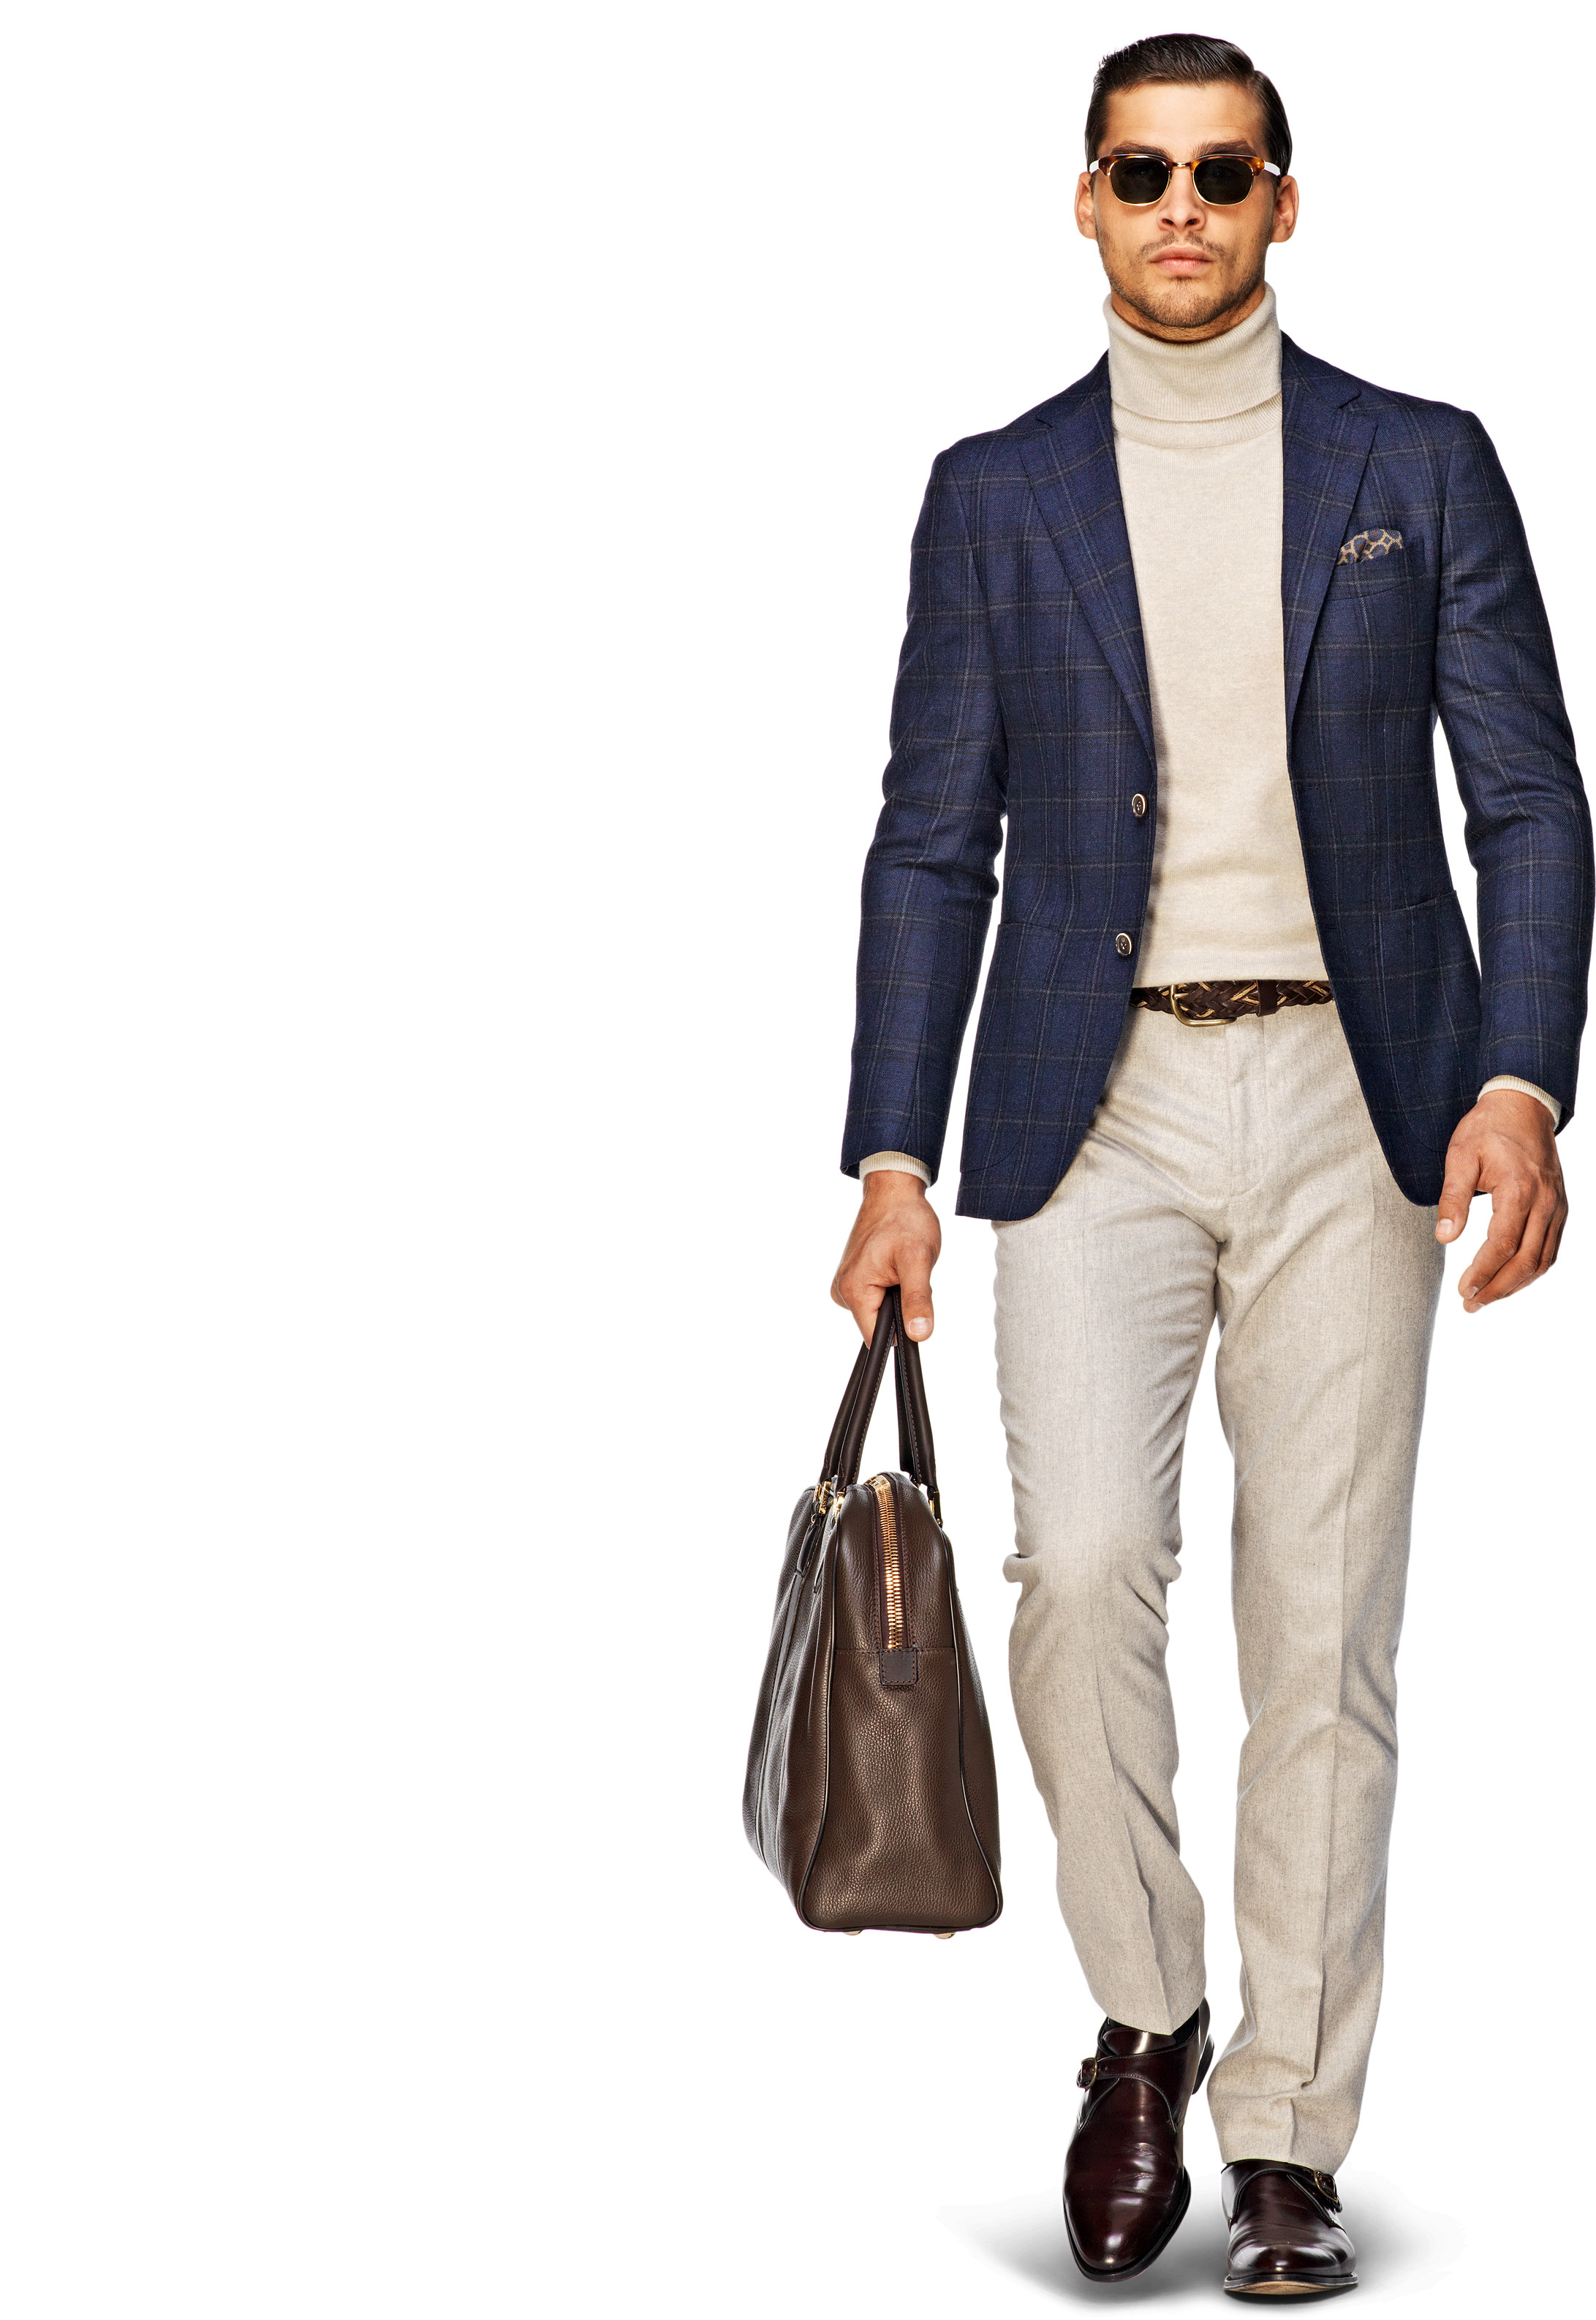 Best and Most Popular Outfits from Man Fashion ...